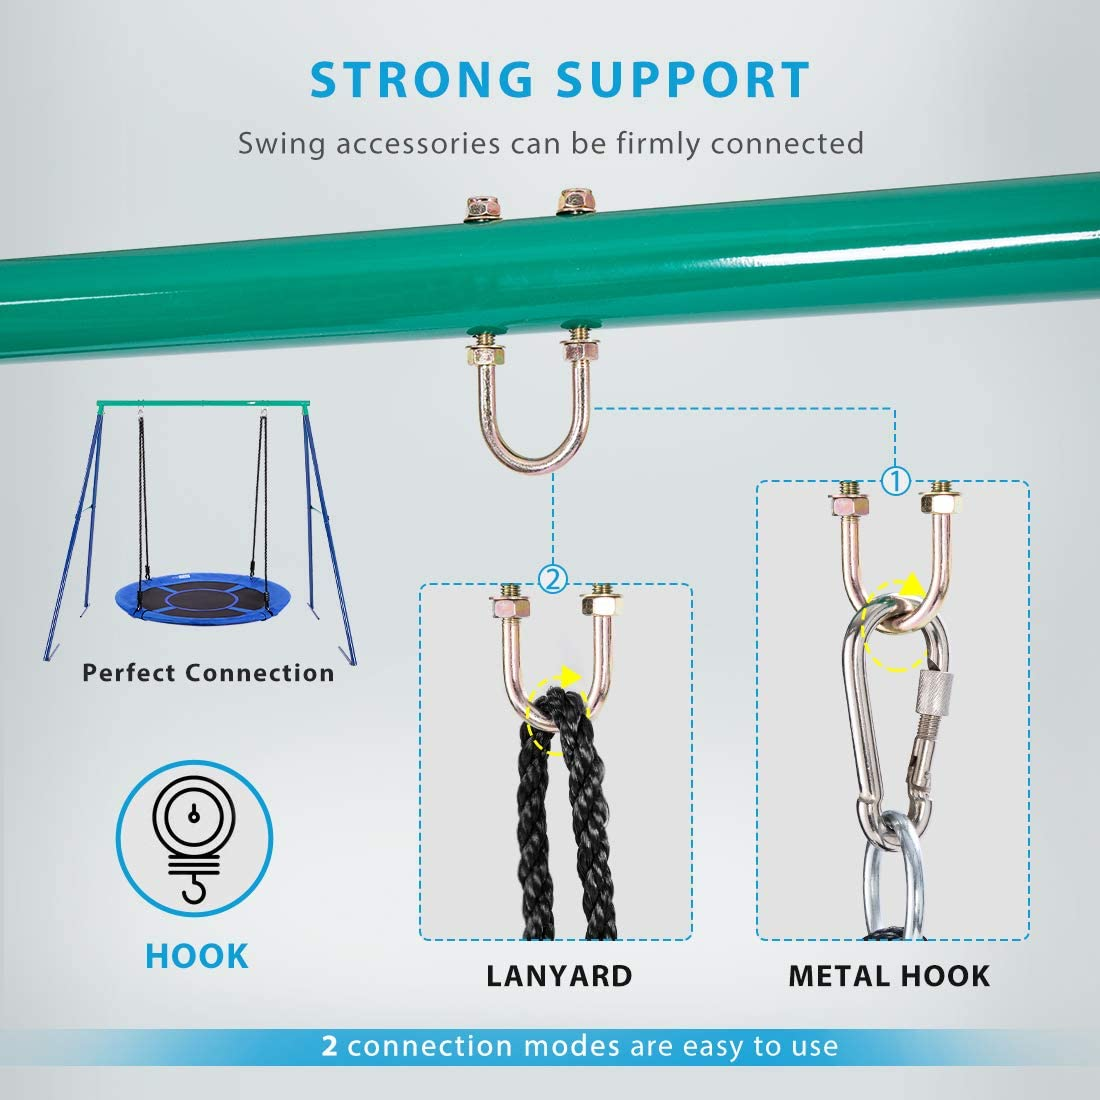 Swing Not Included Hold up to 440 lbs VIVOHOME Metal Swing Frame Full Steel Stand for Kids and Adult Fit Most Swings